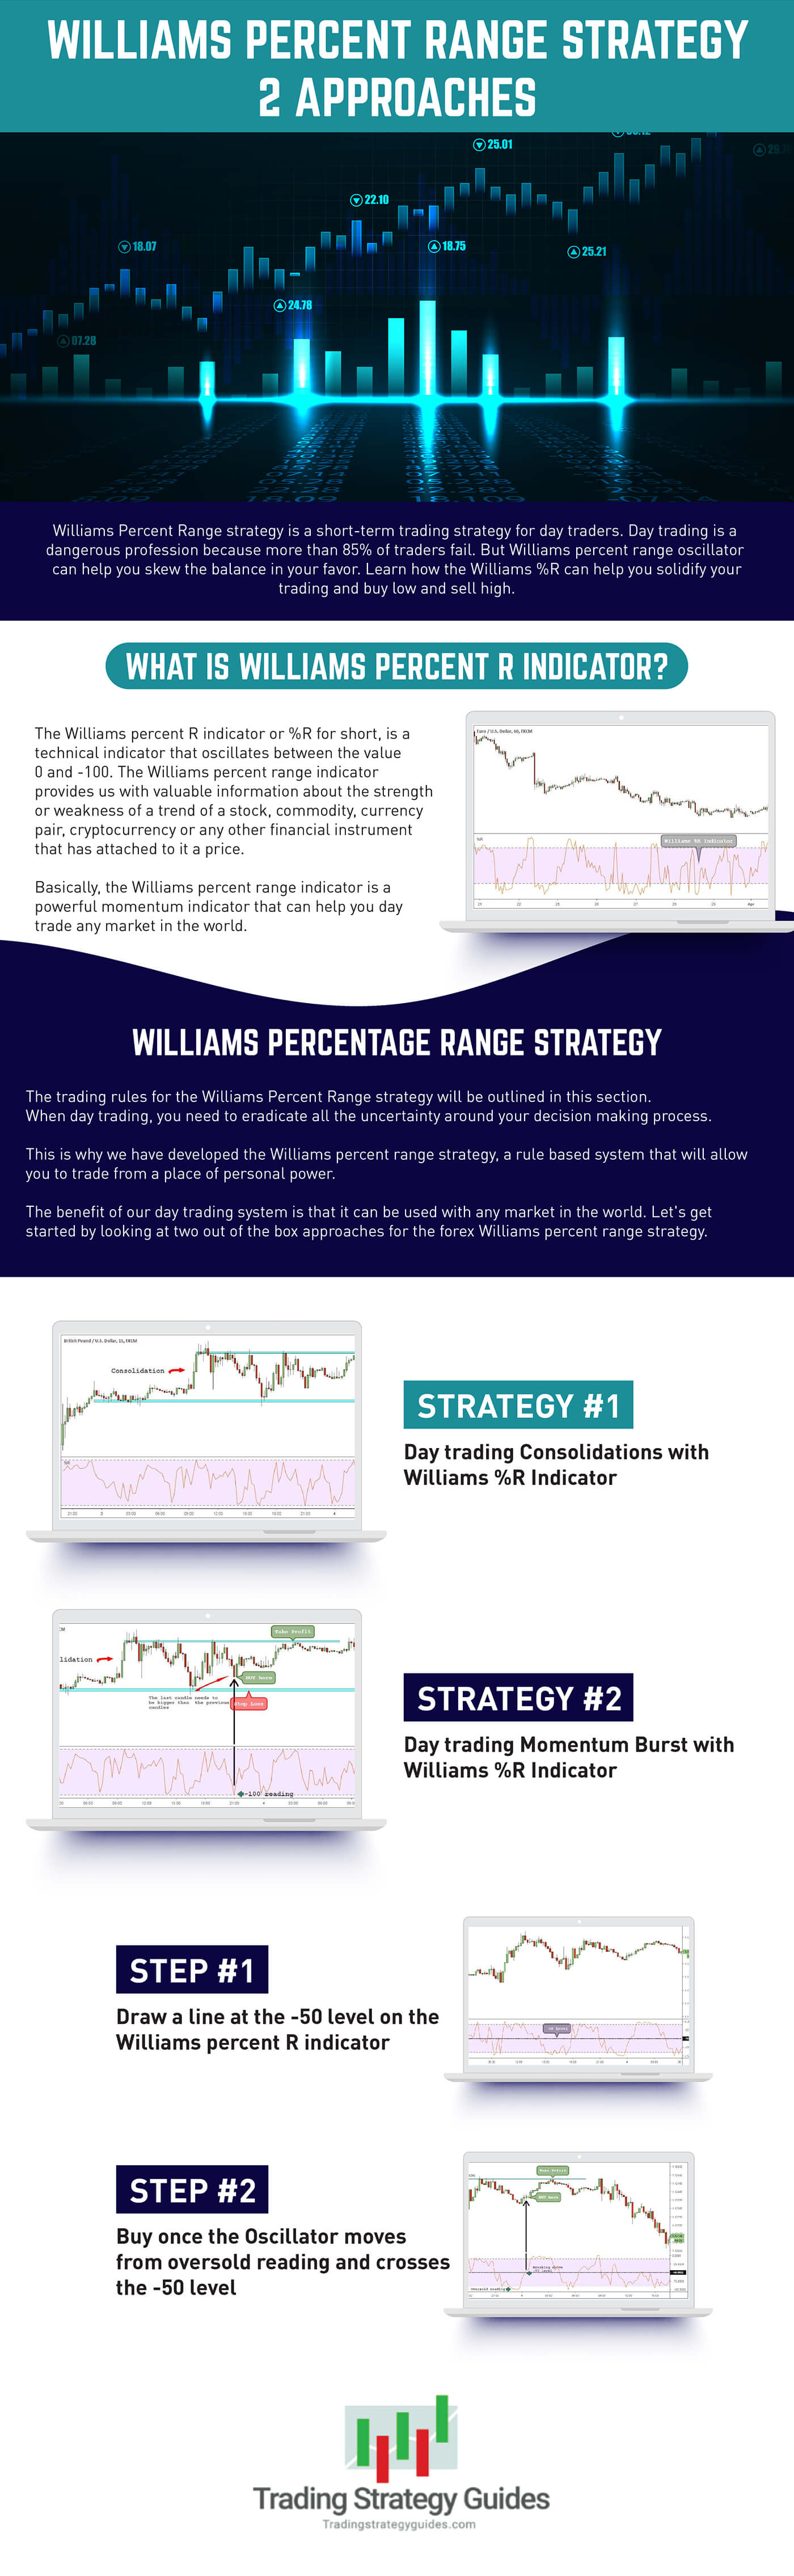 Williams percent range strategy pdf guide